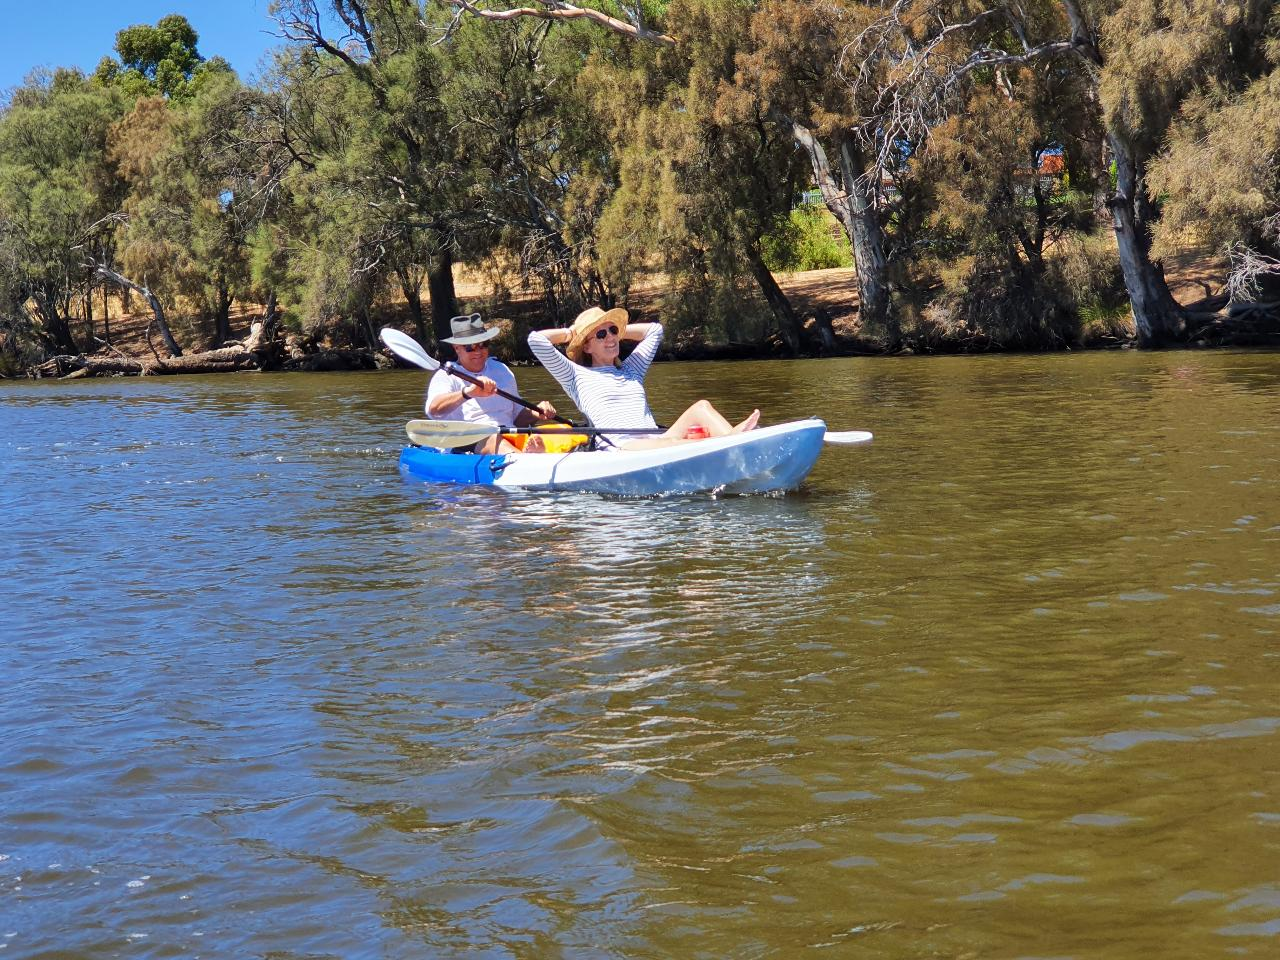 Mandoon Winery and Kayak Tour with wine tasting and lunch